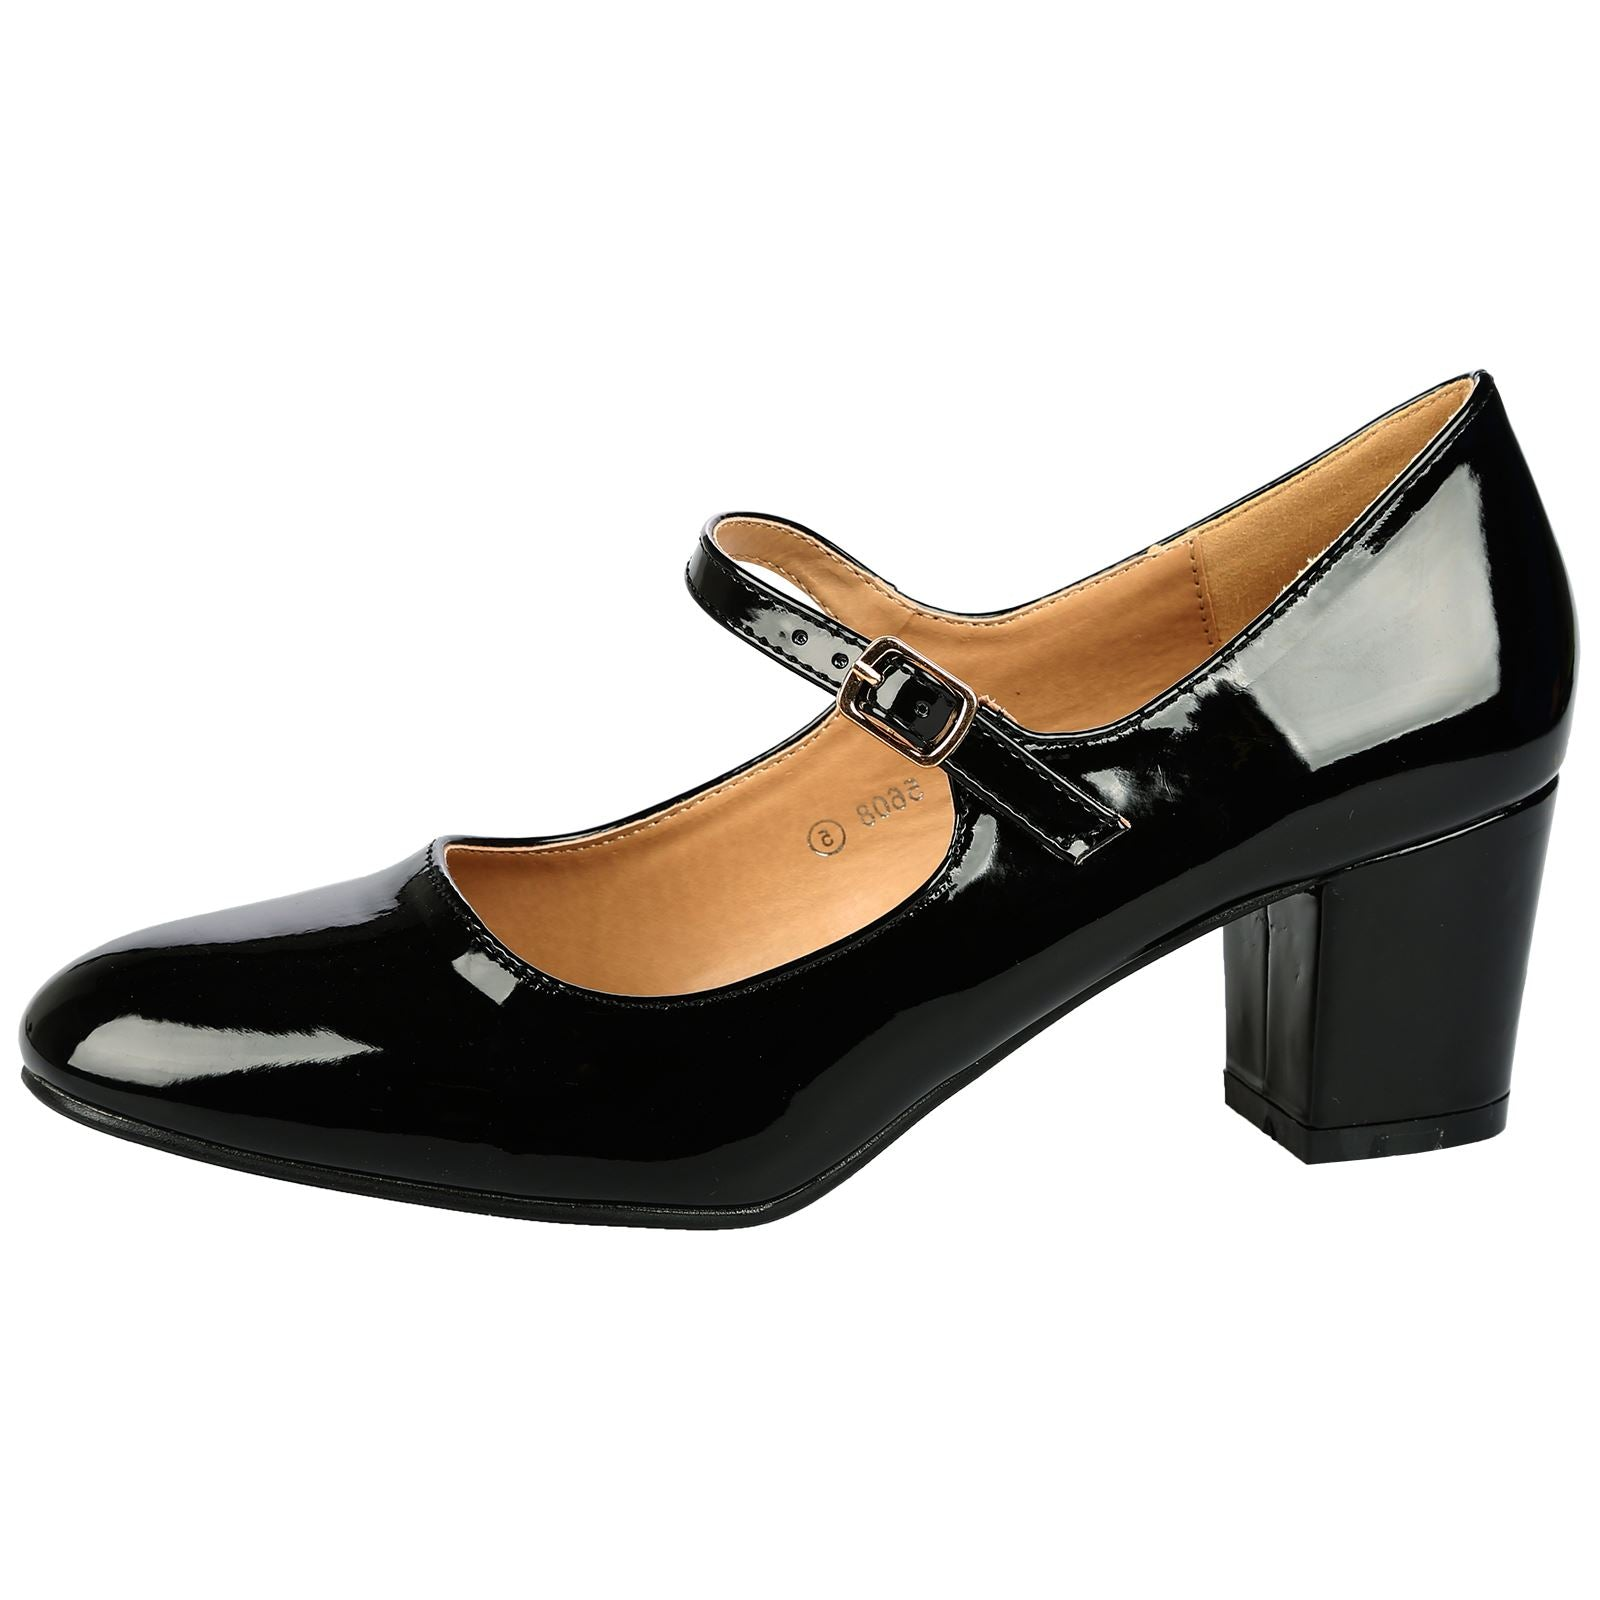 Xanthe Classic Block Heel Mary Janes in Black Patent